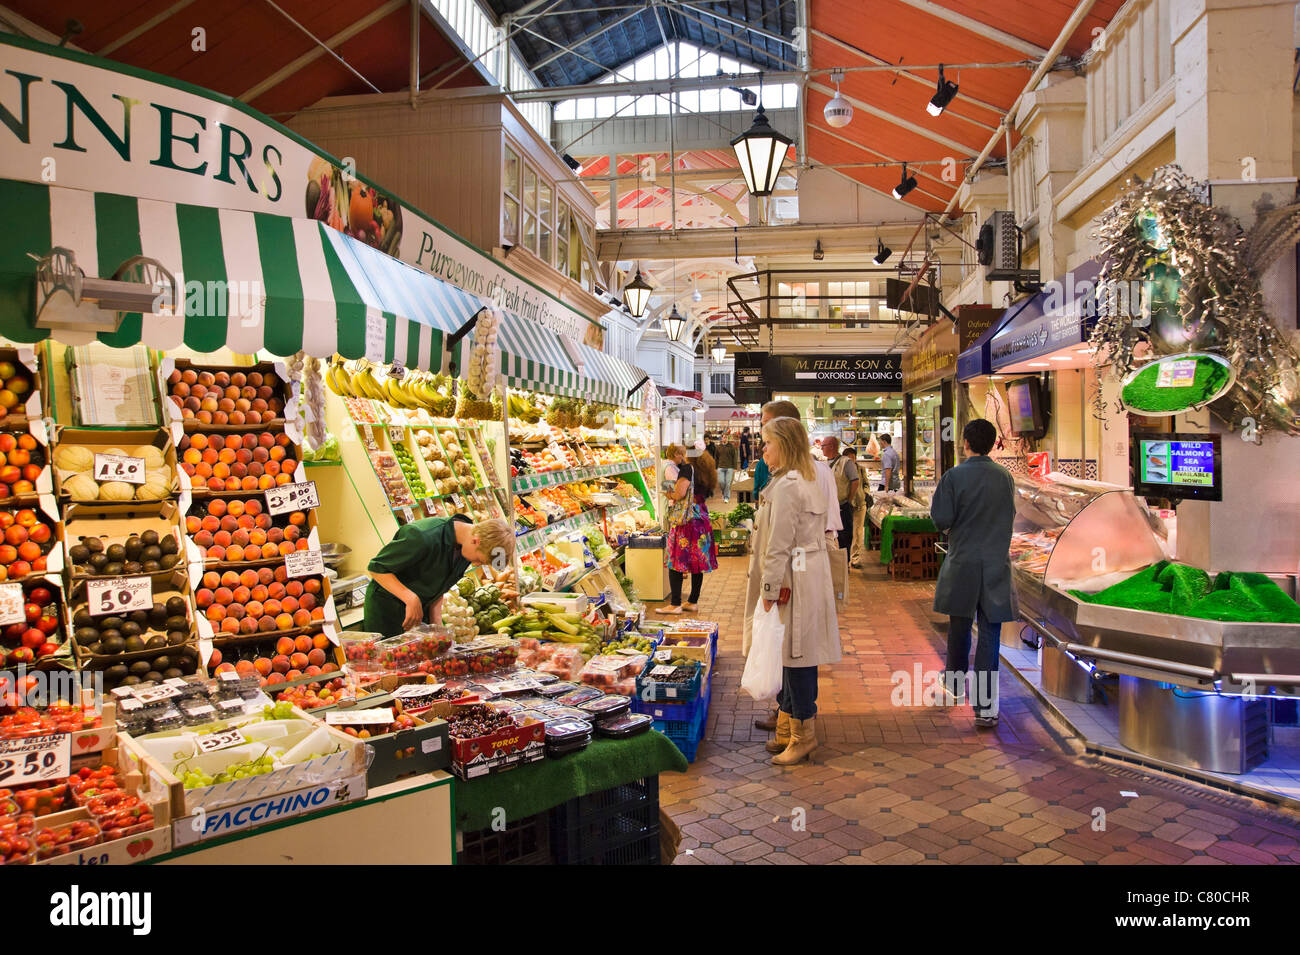 Food stalls in the Covered Market, Oxford, Oxfordshire, England, UK - Stock Image